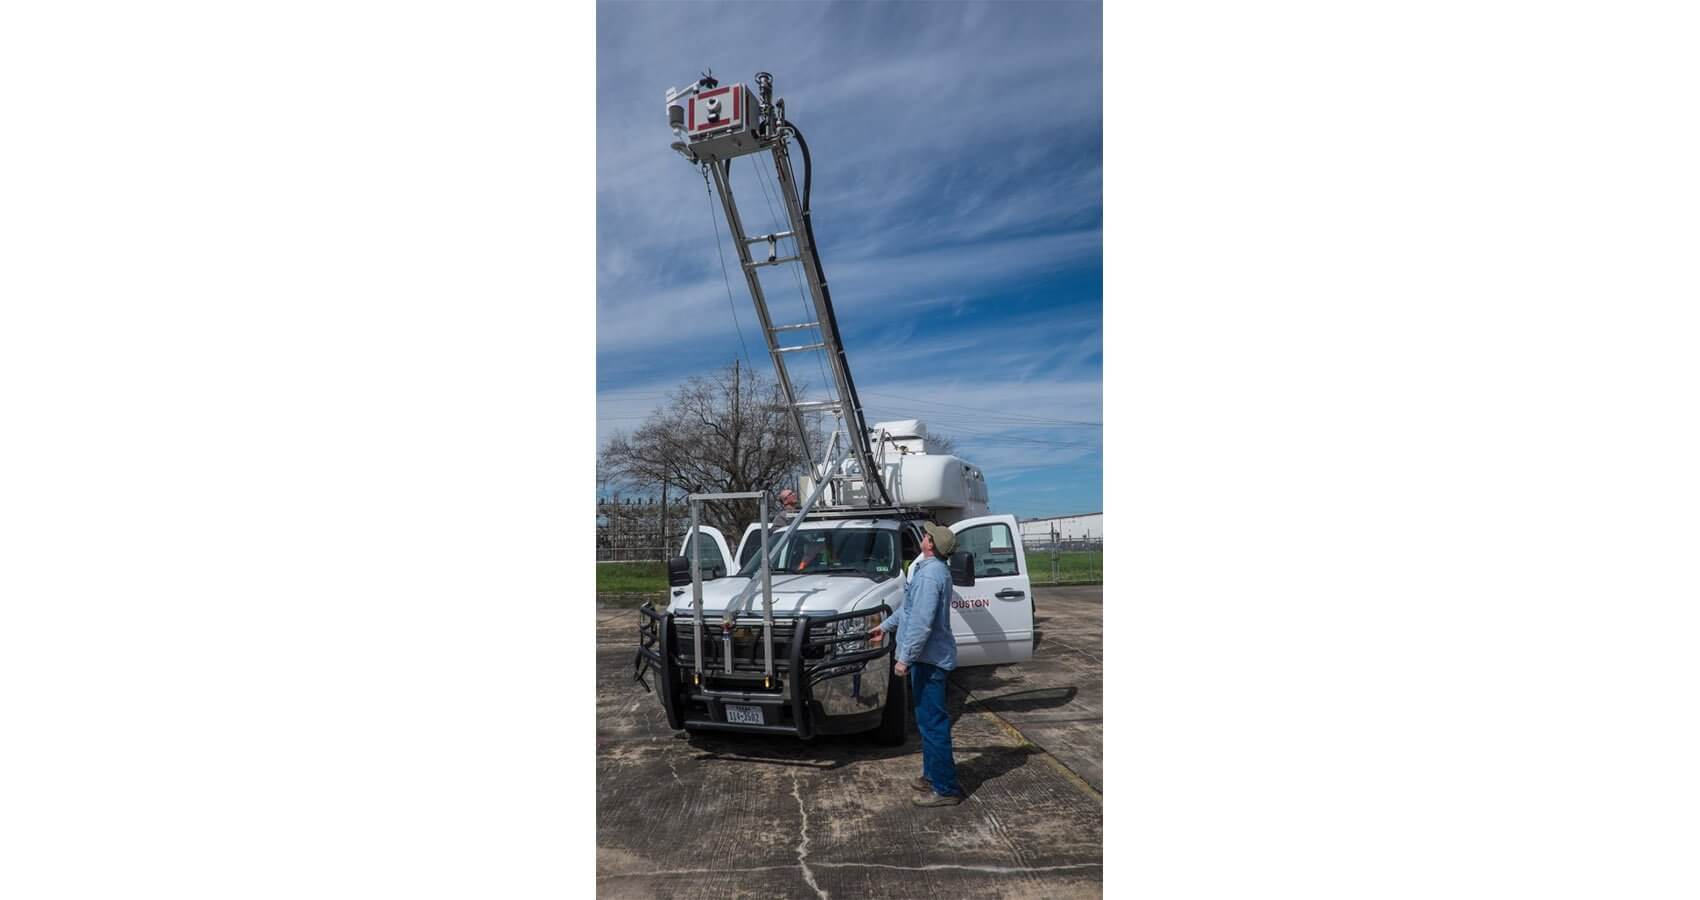 The Mobile Environmental Lab with mast raised. (Credit: Jeff Fitlow/Rice University)